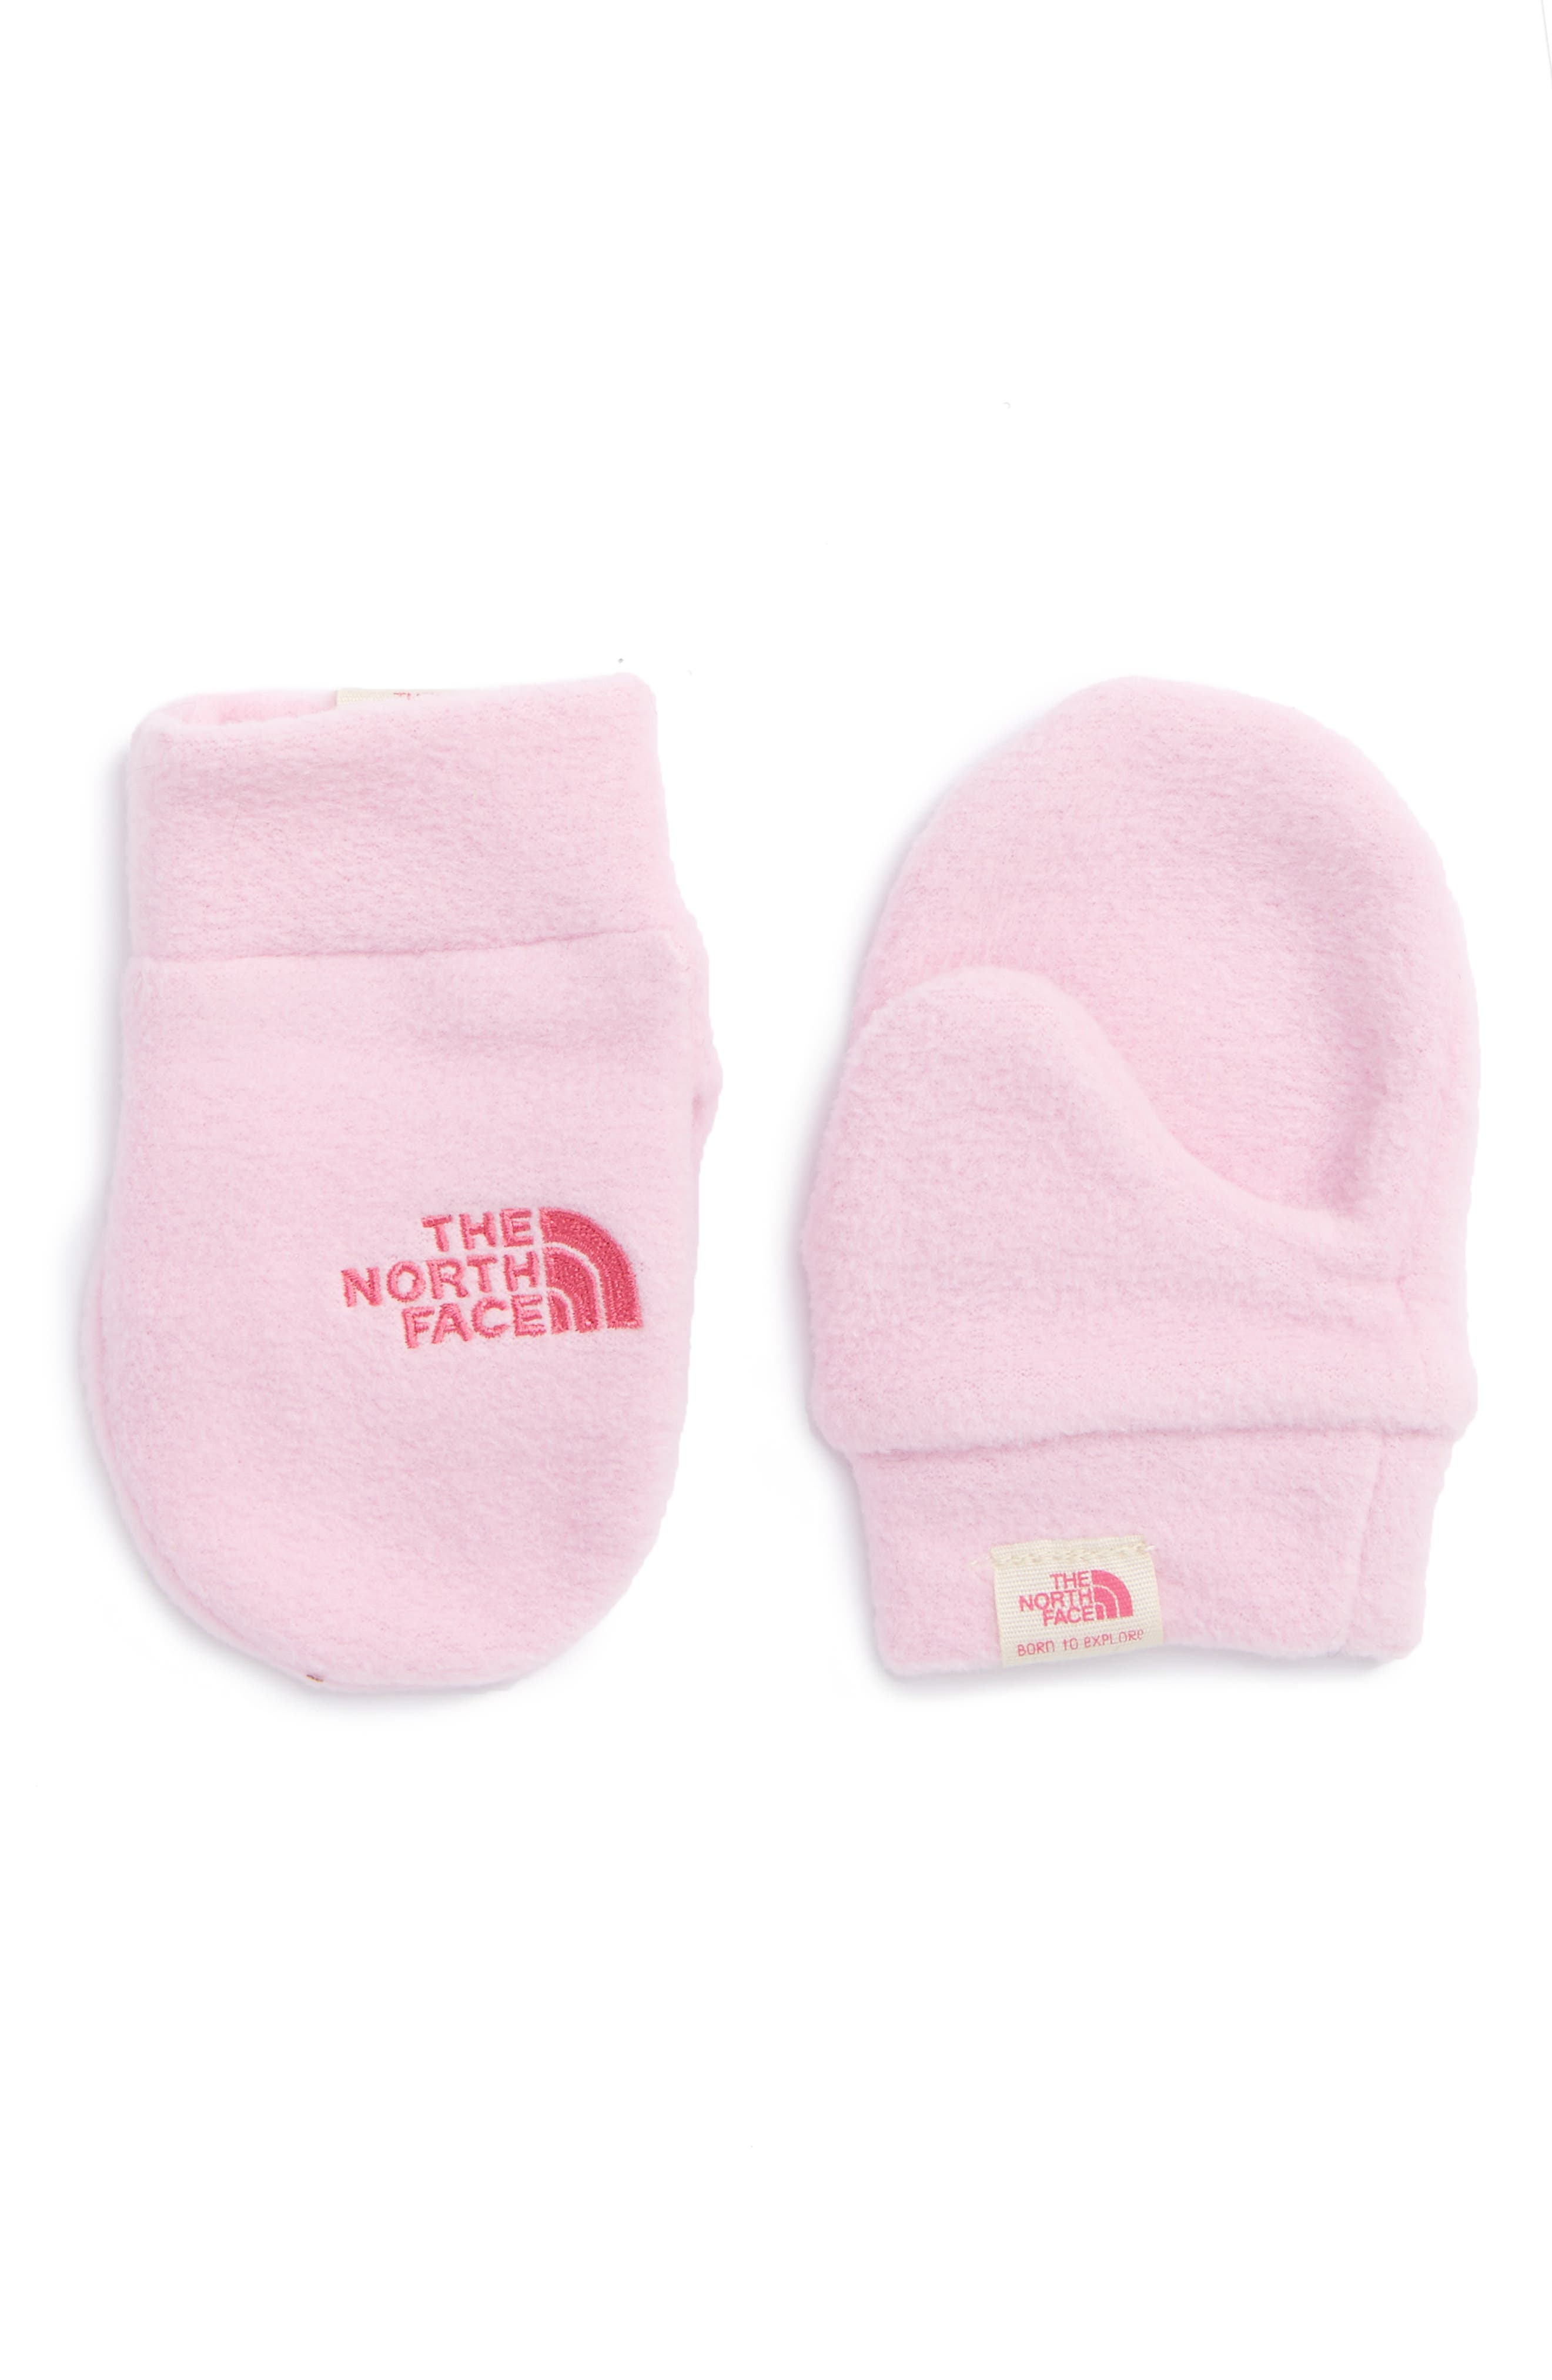 The North Face 'Nugget' Fleece Mittens (Baby)